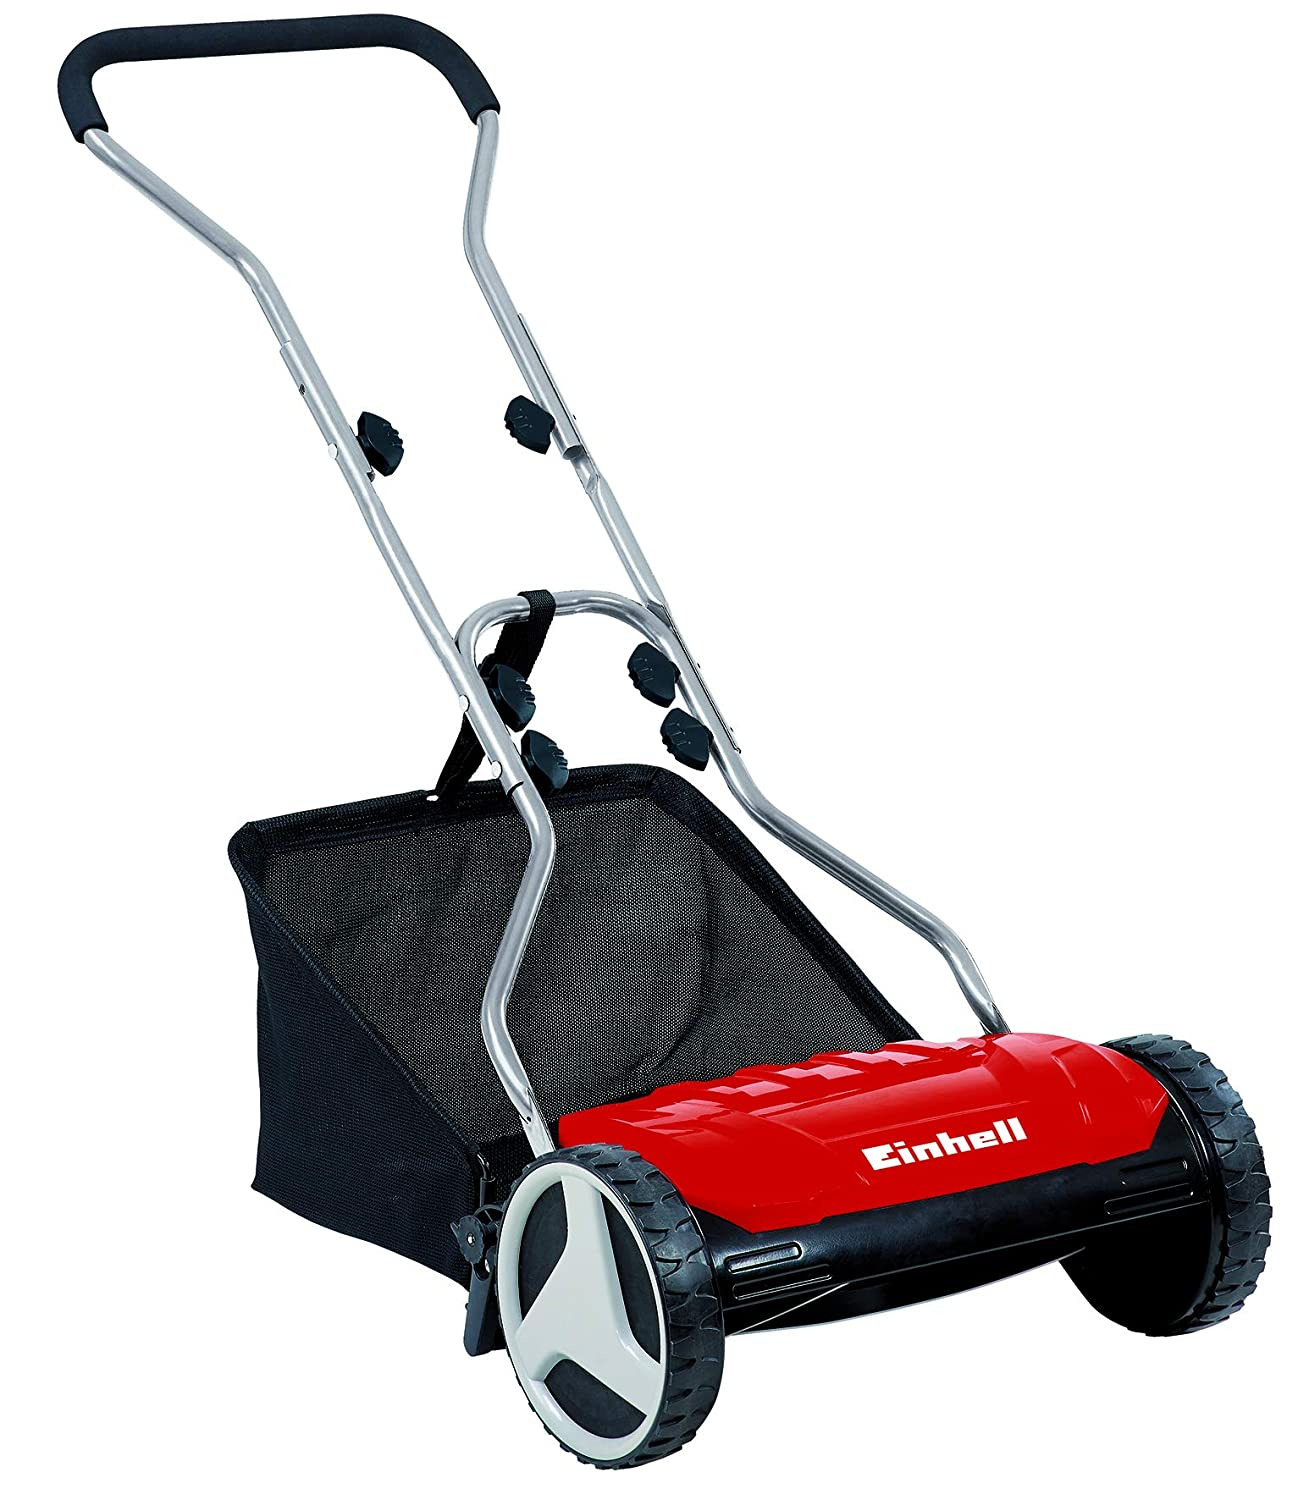 Einhell GE-HM 38 S-F Hand Push Lawnmower with 38 cm Cutting Width - Red 3414161